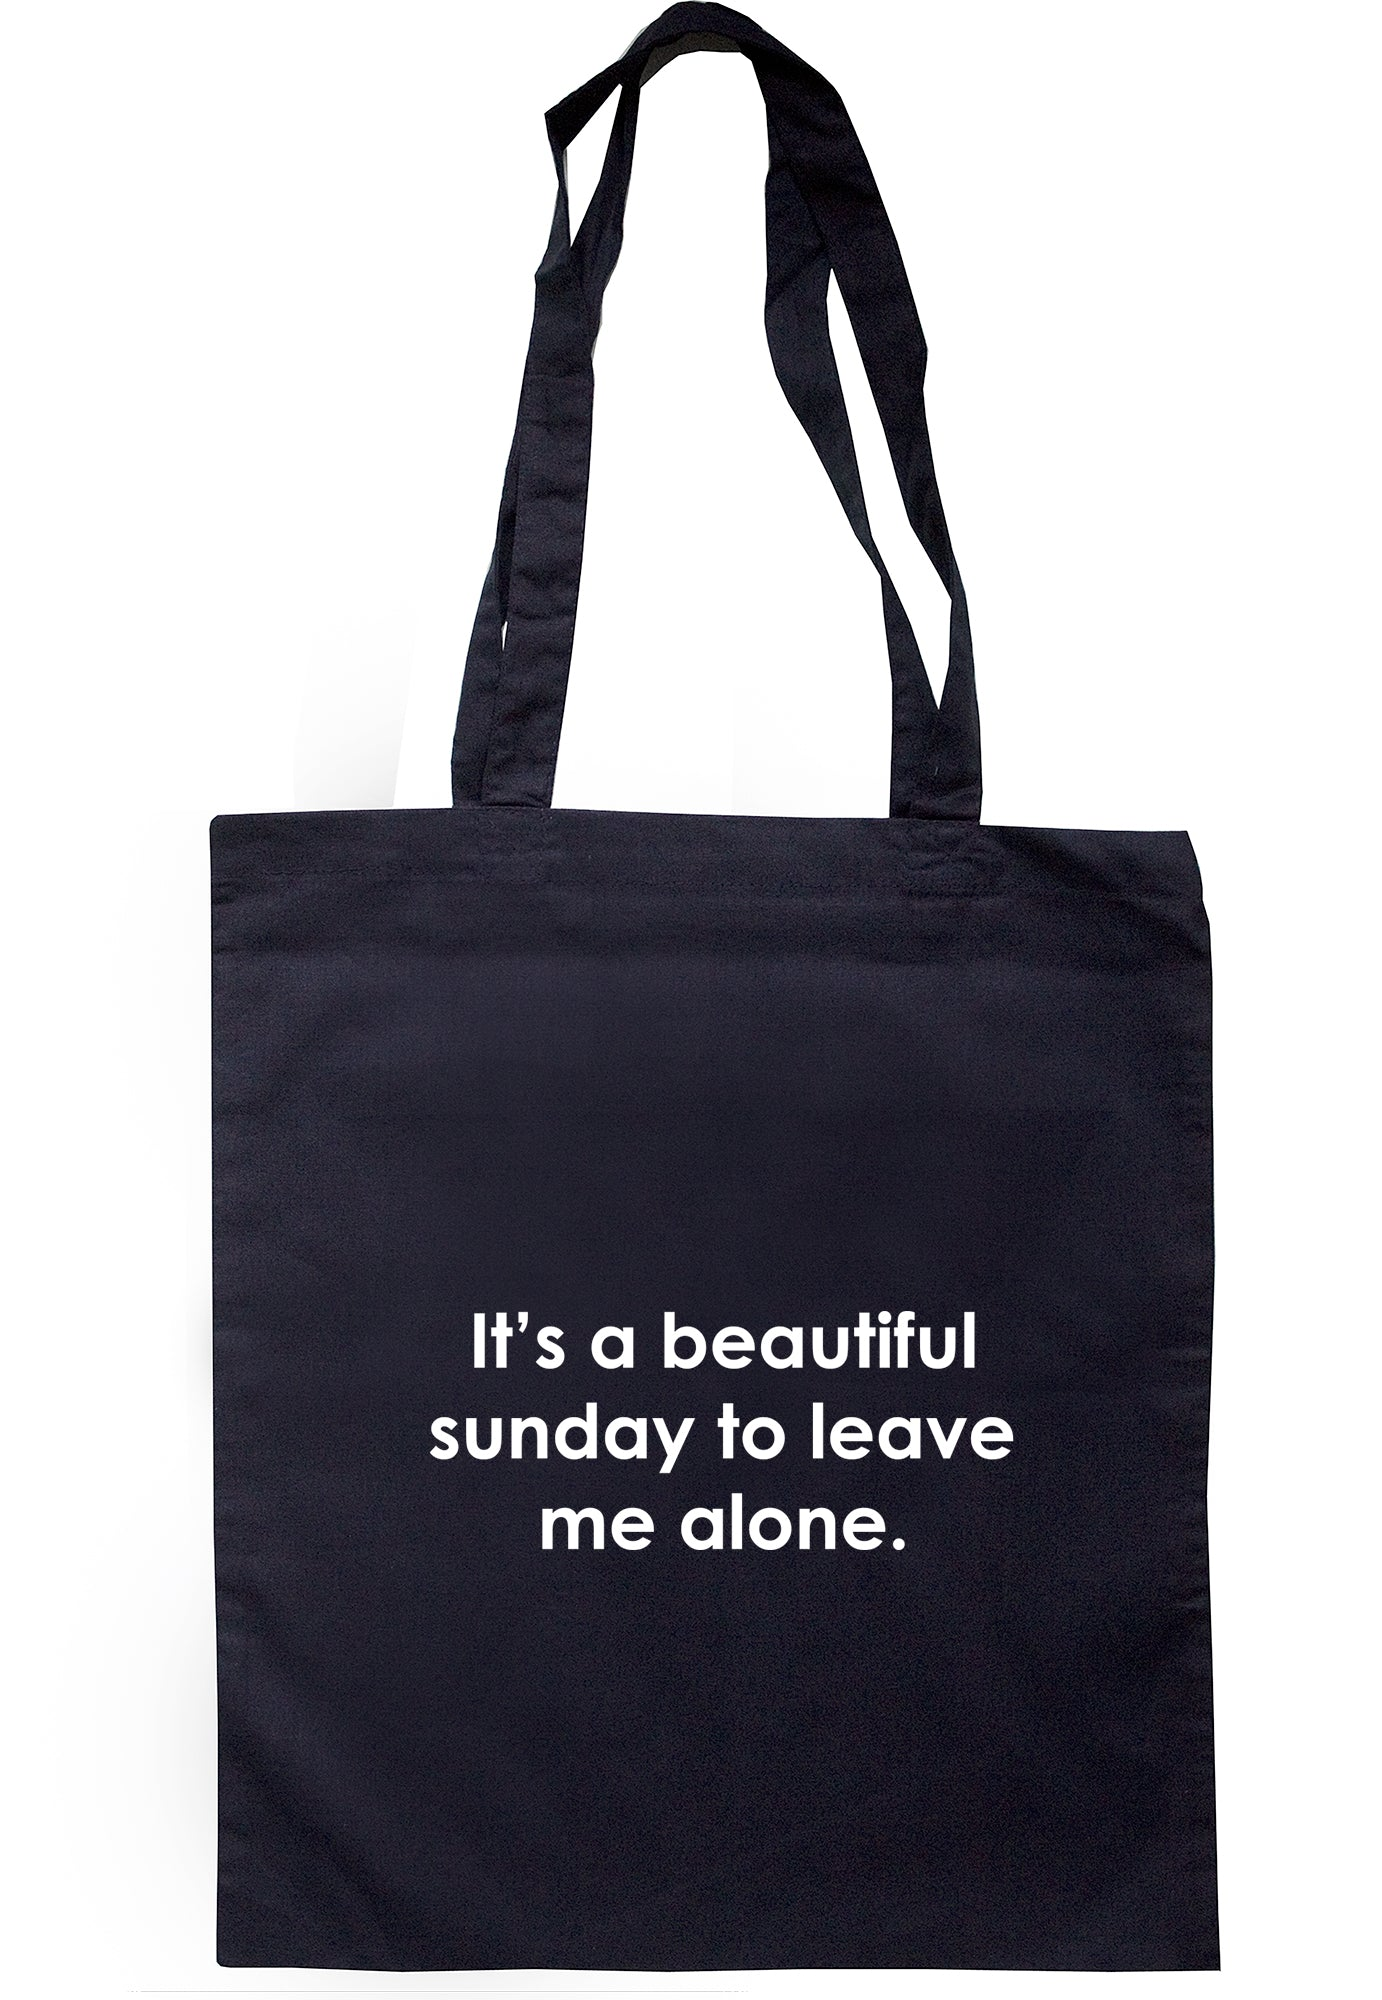 It's A Beautiful Sunday To Leave Me Alone Tote Bag S1101 - Illustrated Identity Ltd.